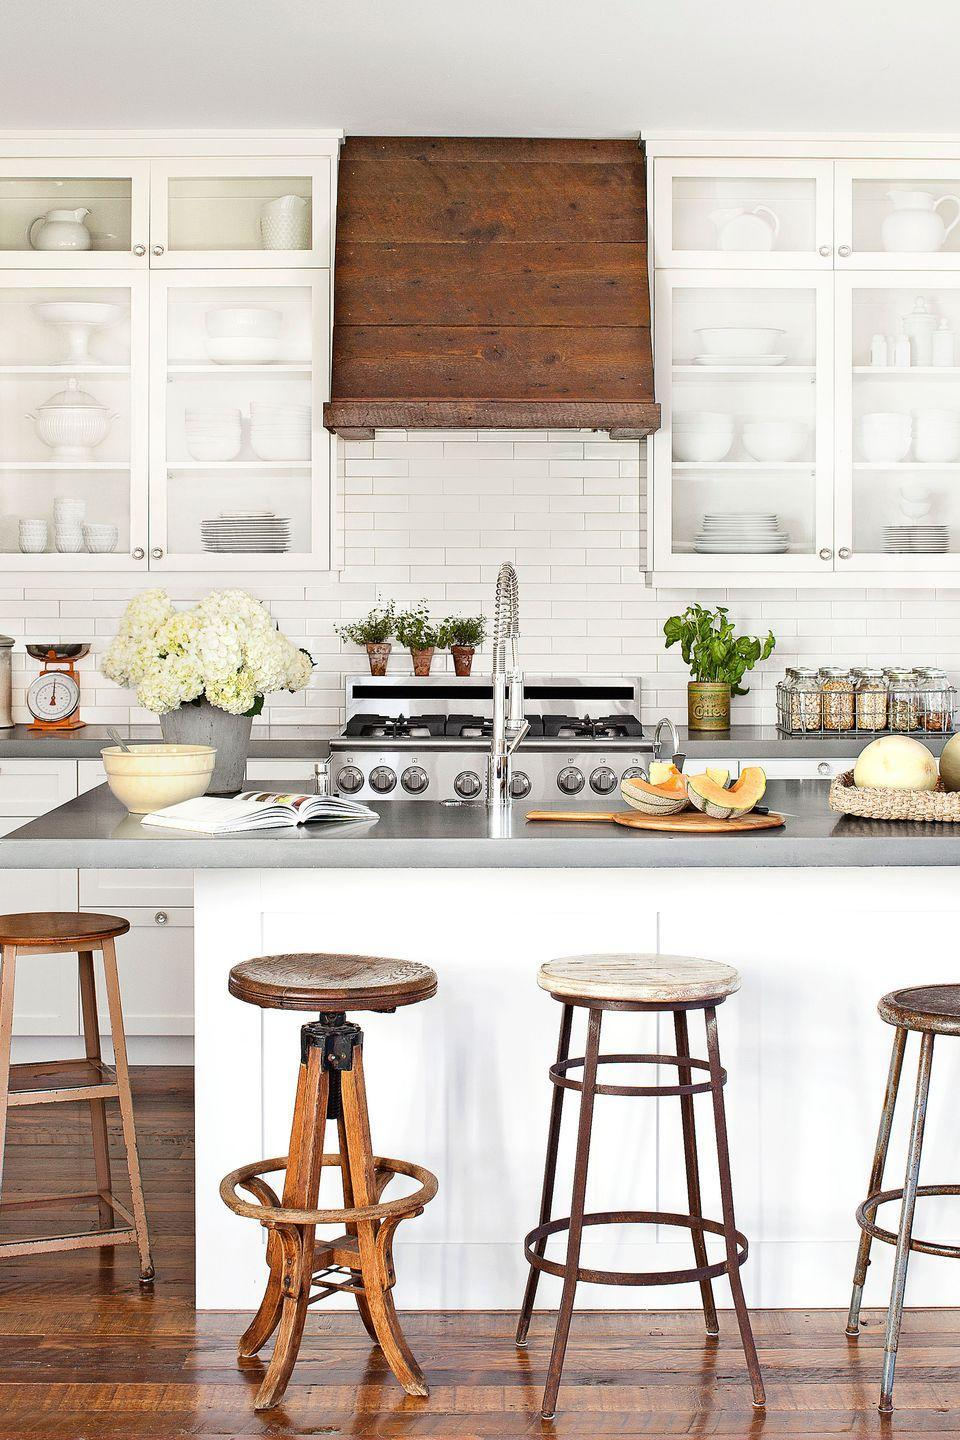 """<p>An assortment of old stools provides quirky charm in the kitchen of this <a href=""""https://www.countryliving.com/home-design/house-tours/g1449/joanna-swanson-budget-home/"""" rel=""""nofollow noopener"""" target=""""_blank"""" data-ylk=""""slk:Oregon farmhouse"""" class=""""link rapid-noclick-resp"""">Oregon farmhouse</a>. Durable concrete countertops from pair with cabinets painted Simple White by Benjamin Moore. Barn wood left over from the floor installation covers a metal Ikea hood.</p>"""